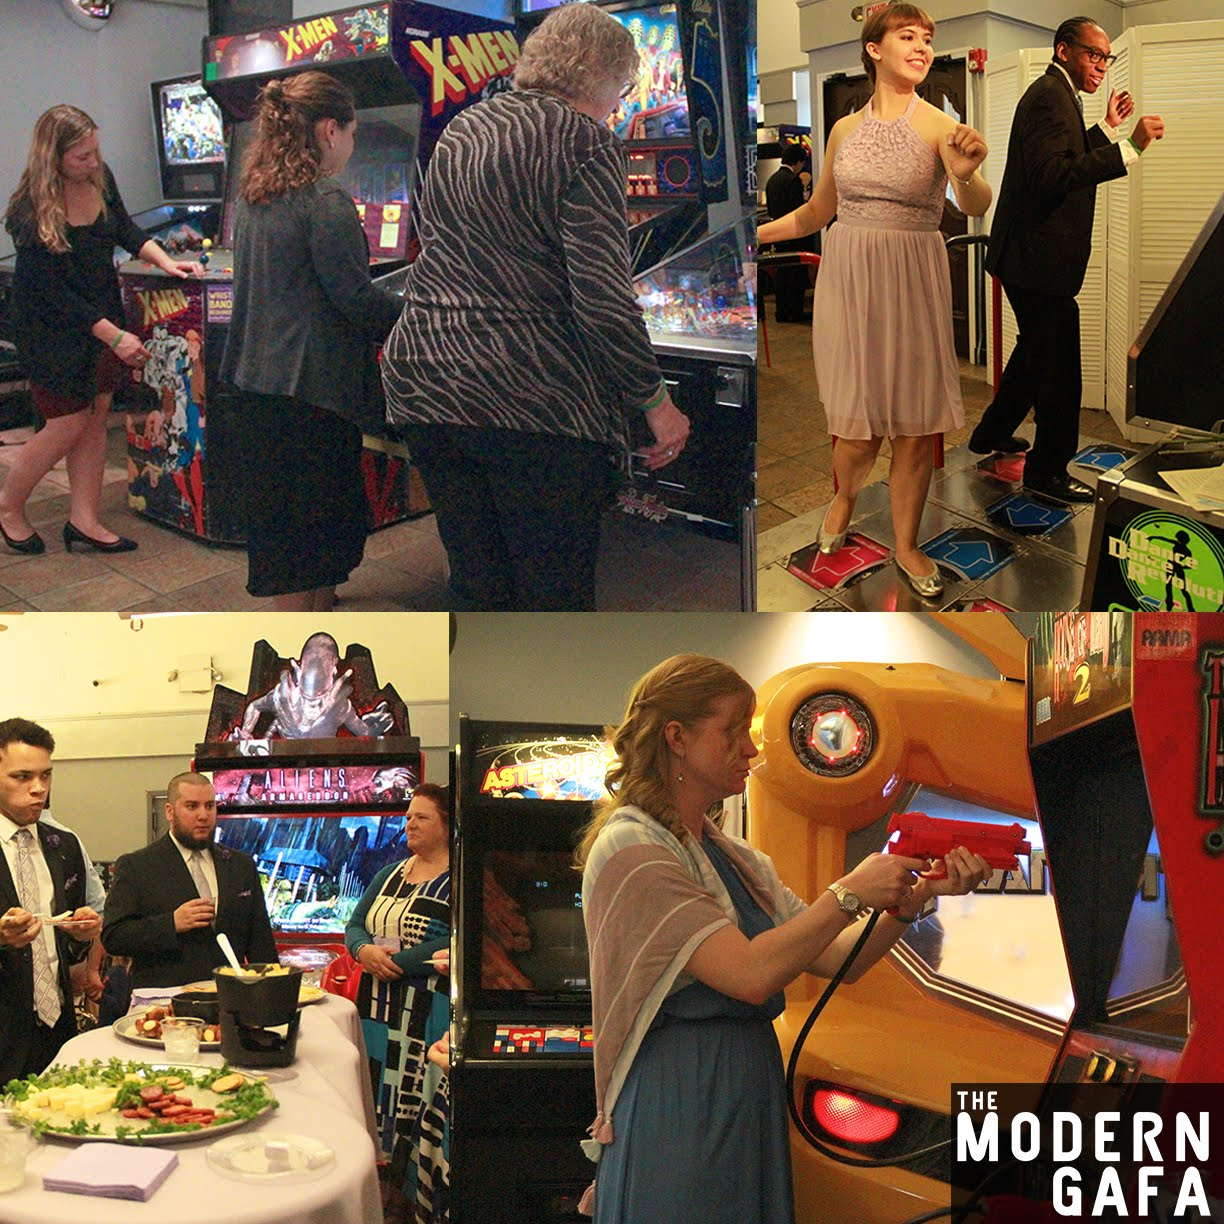 how to have a geeky wedding at an arcade with video game music